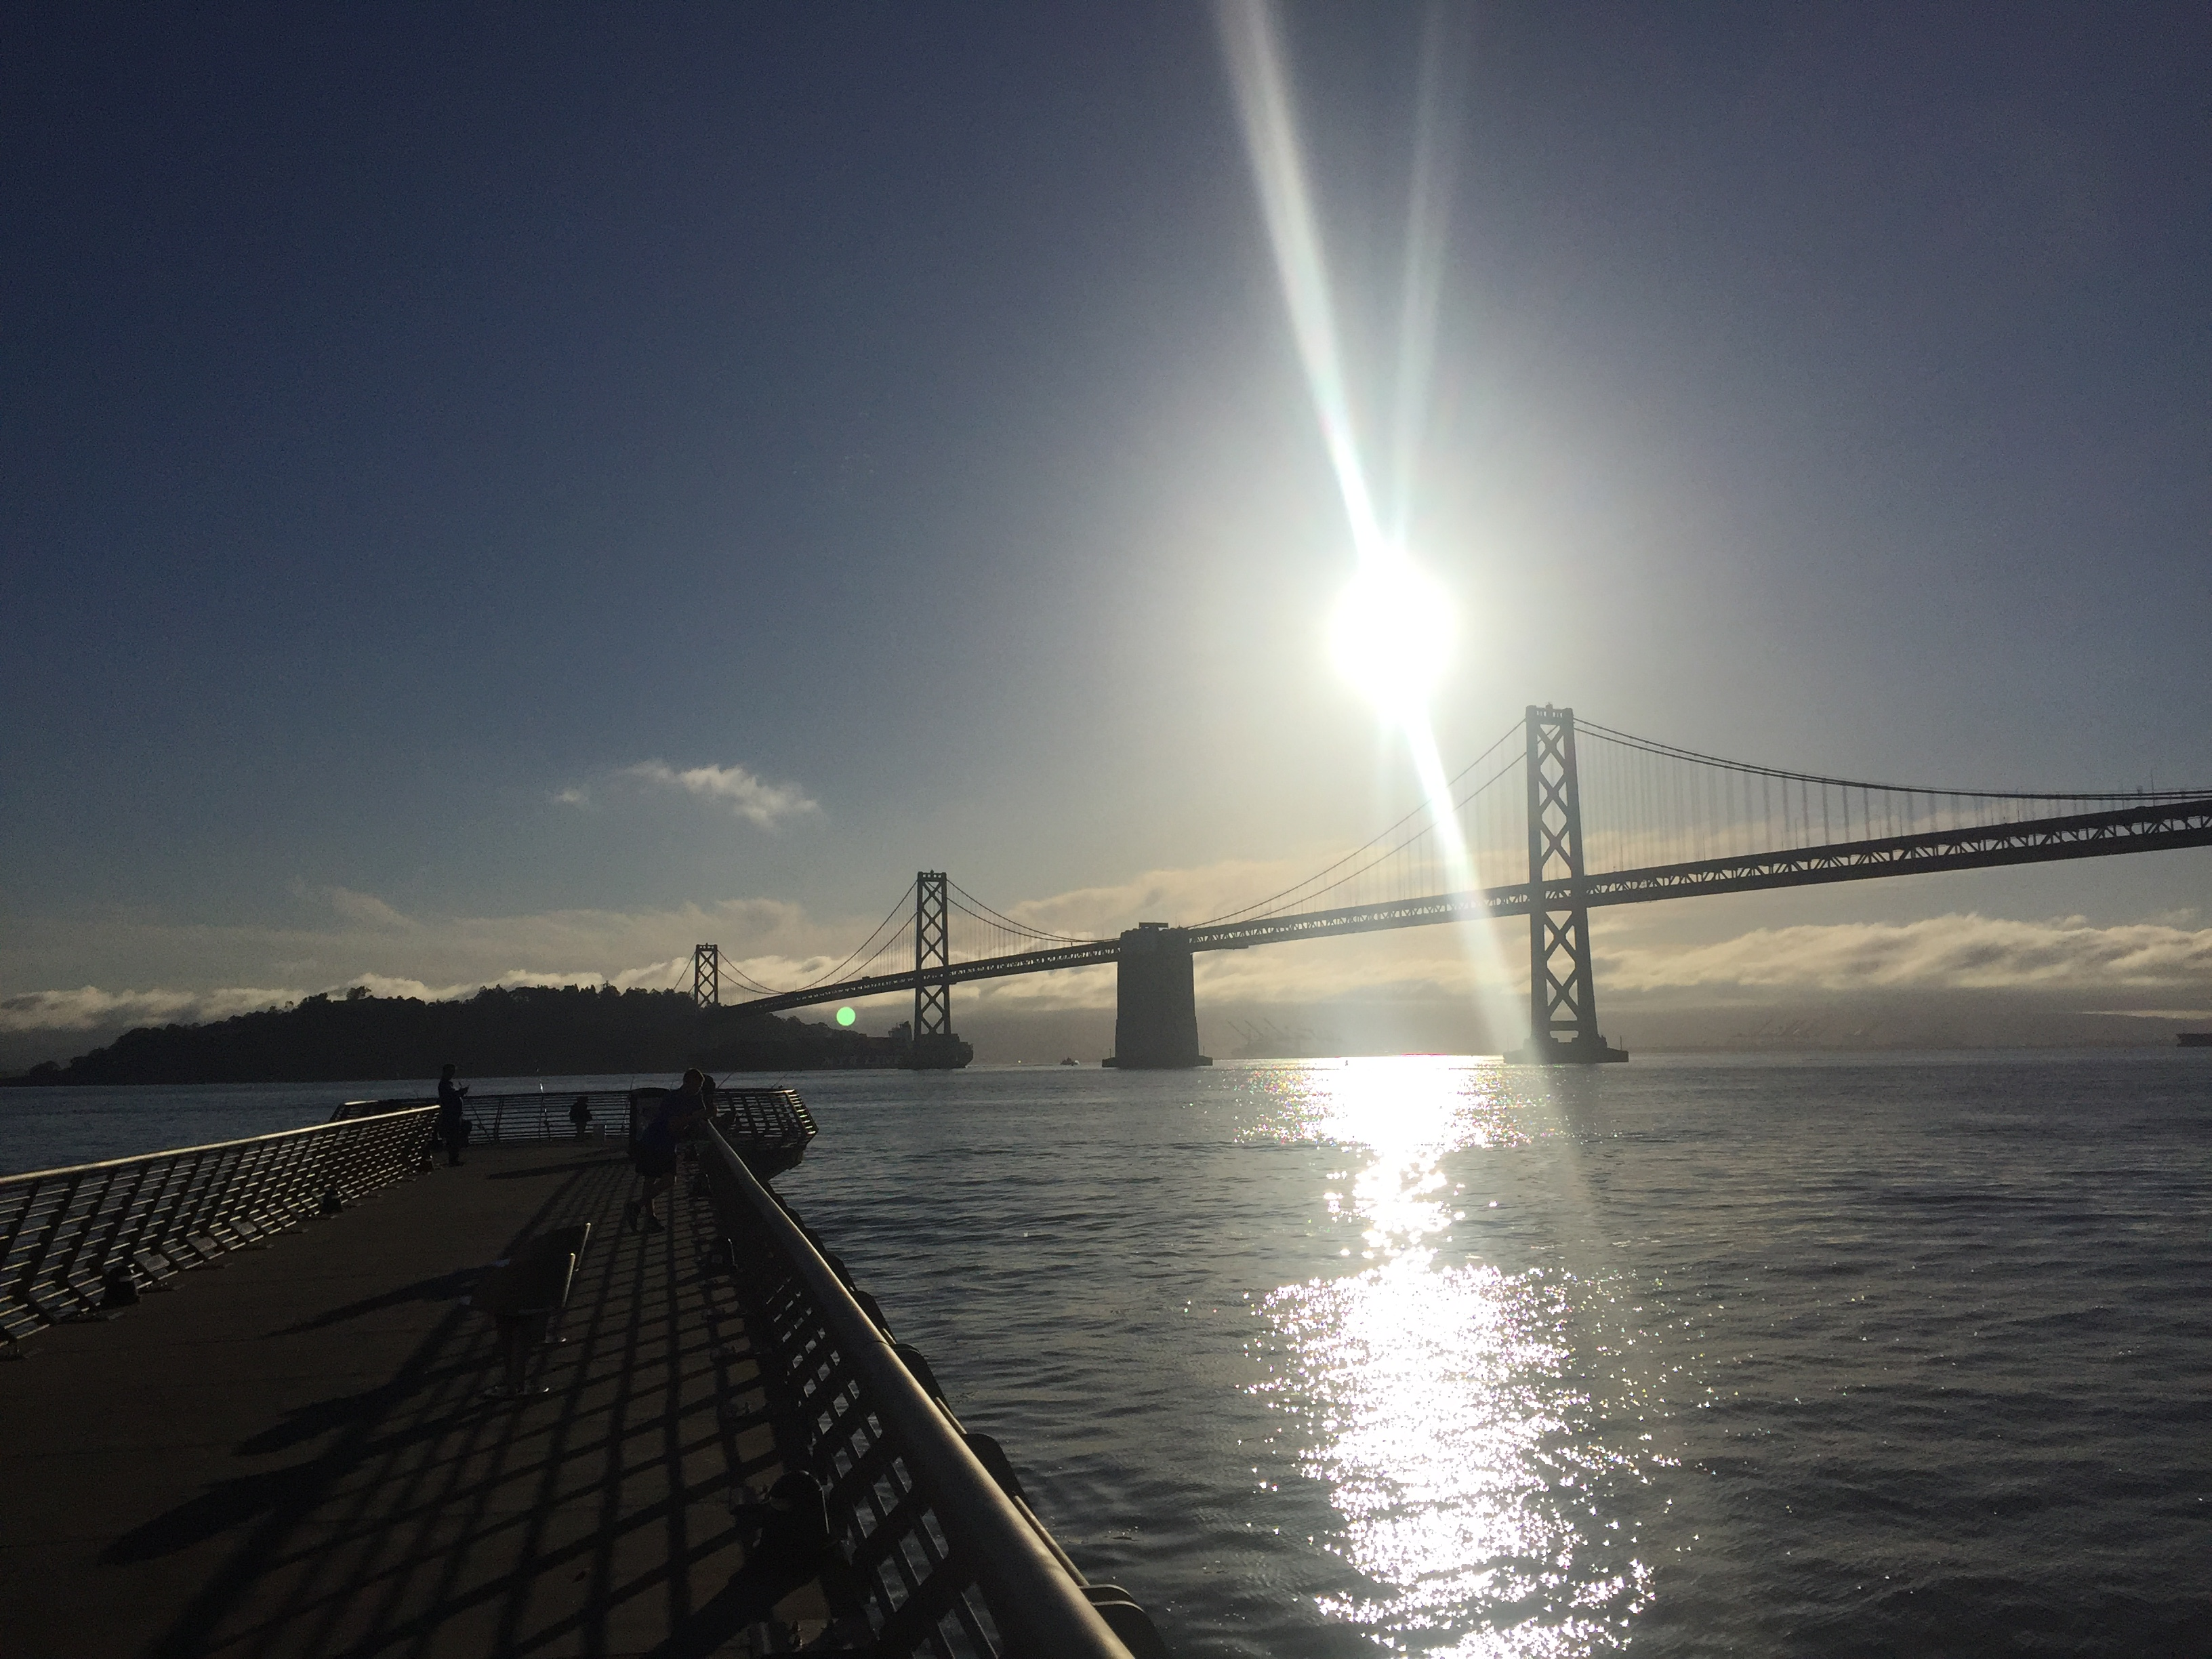 The Well-Intended at San Francisco's Bay Bridge